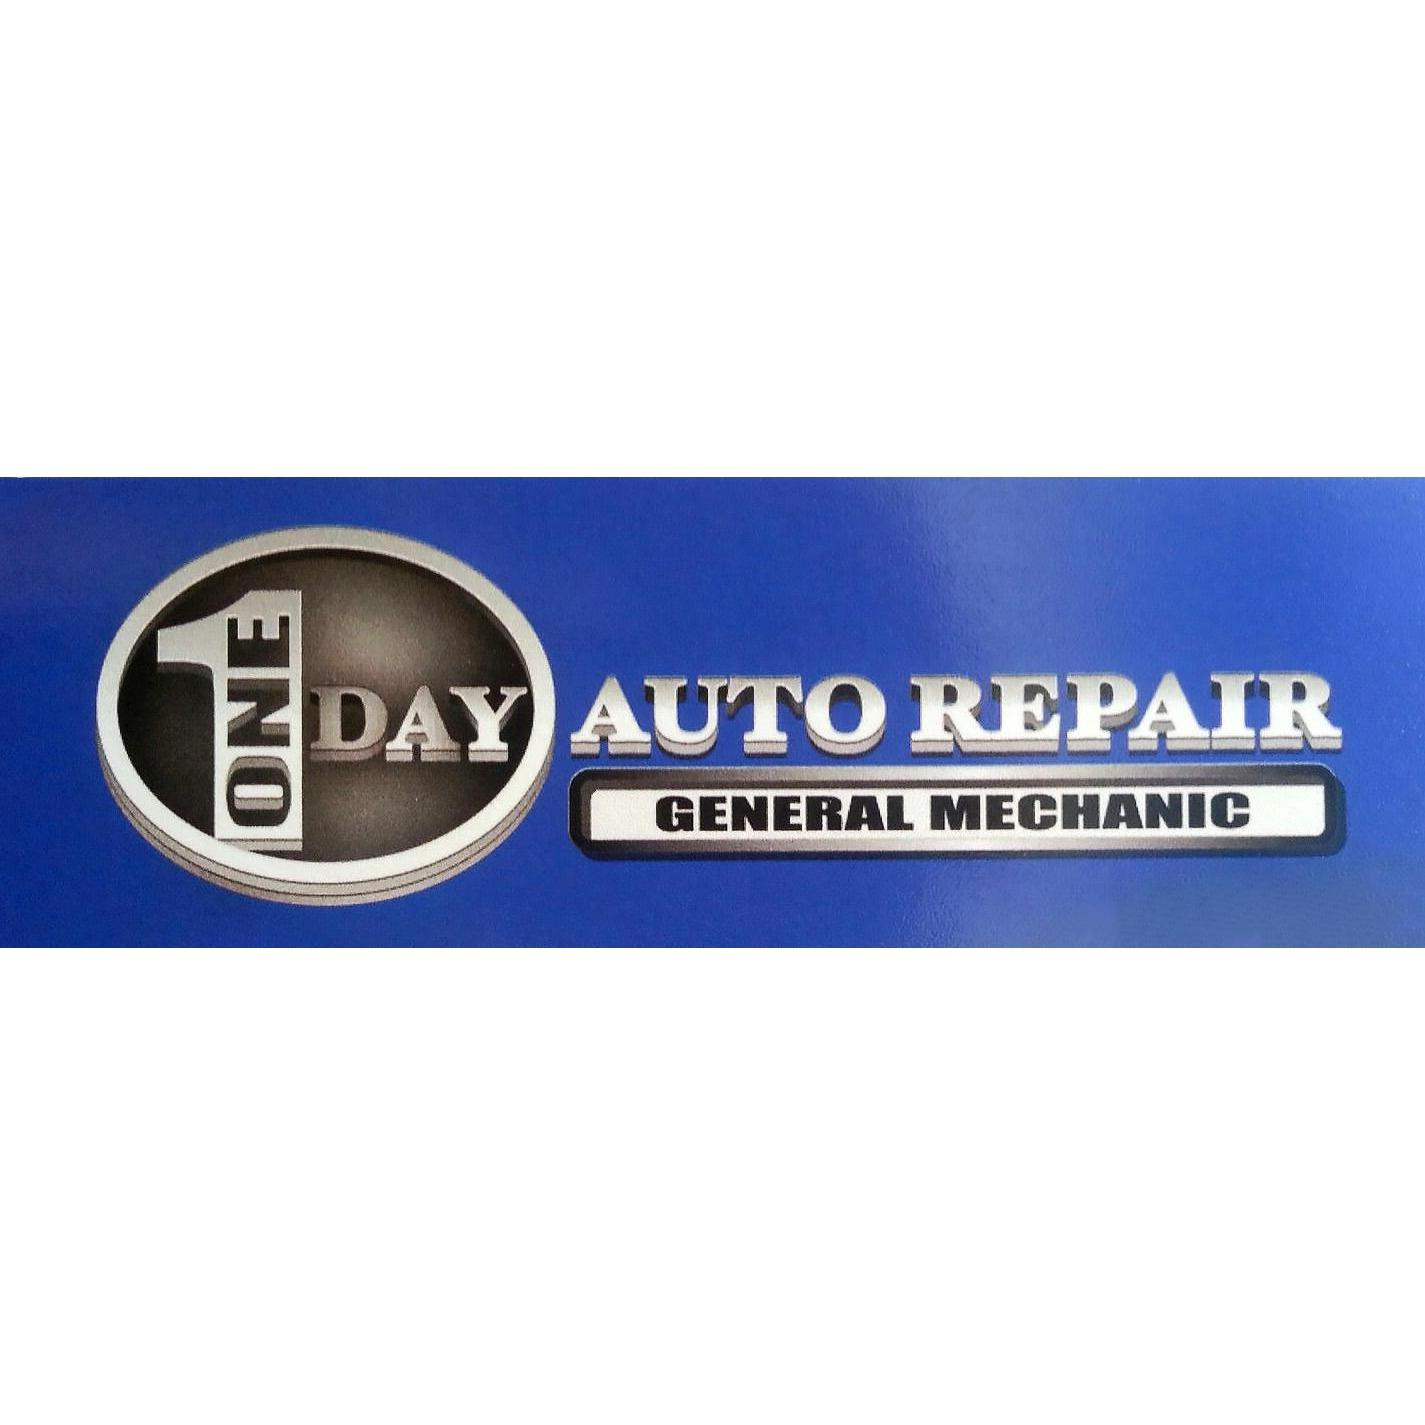 One Day Auto Repair